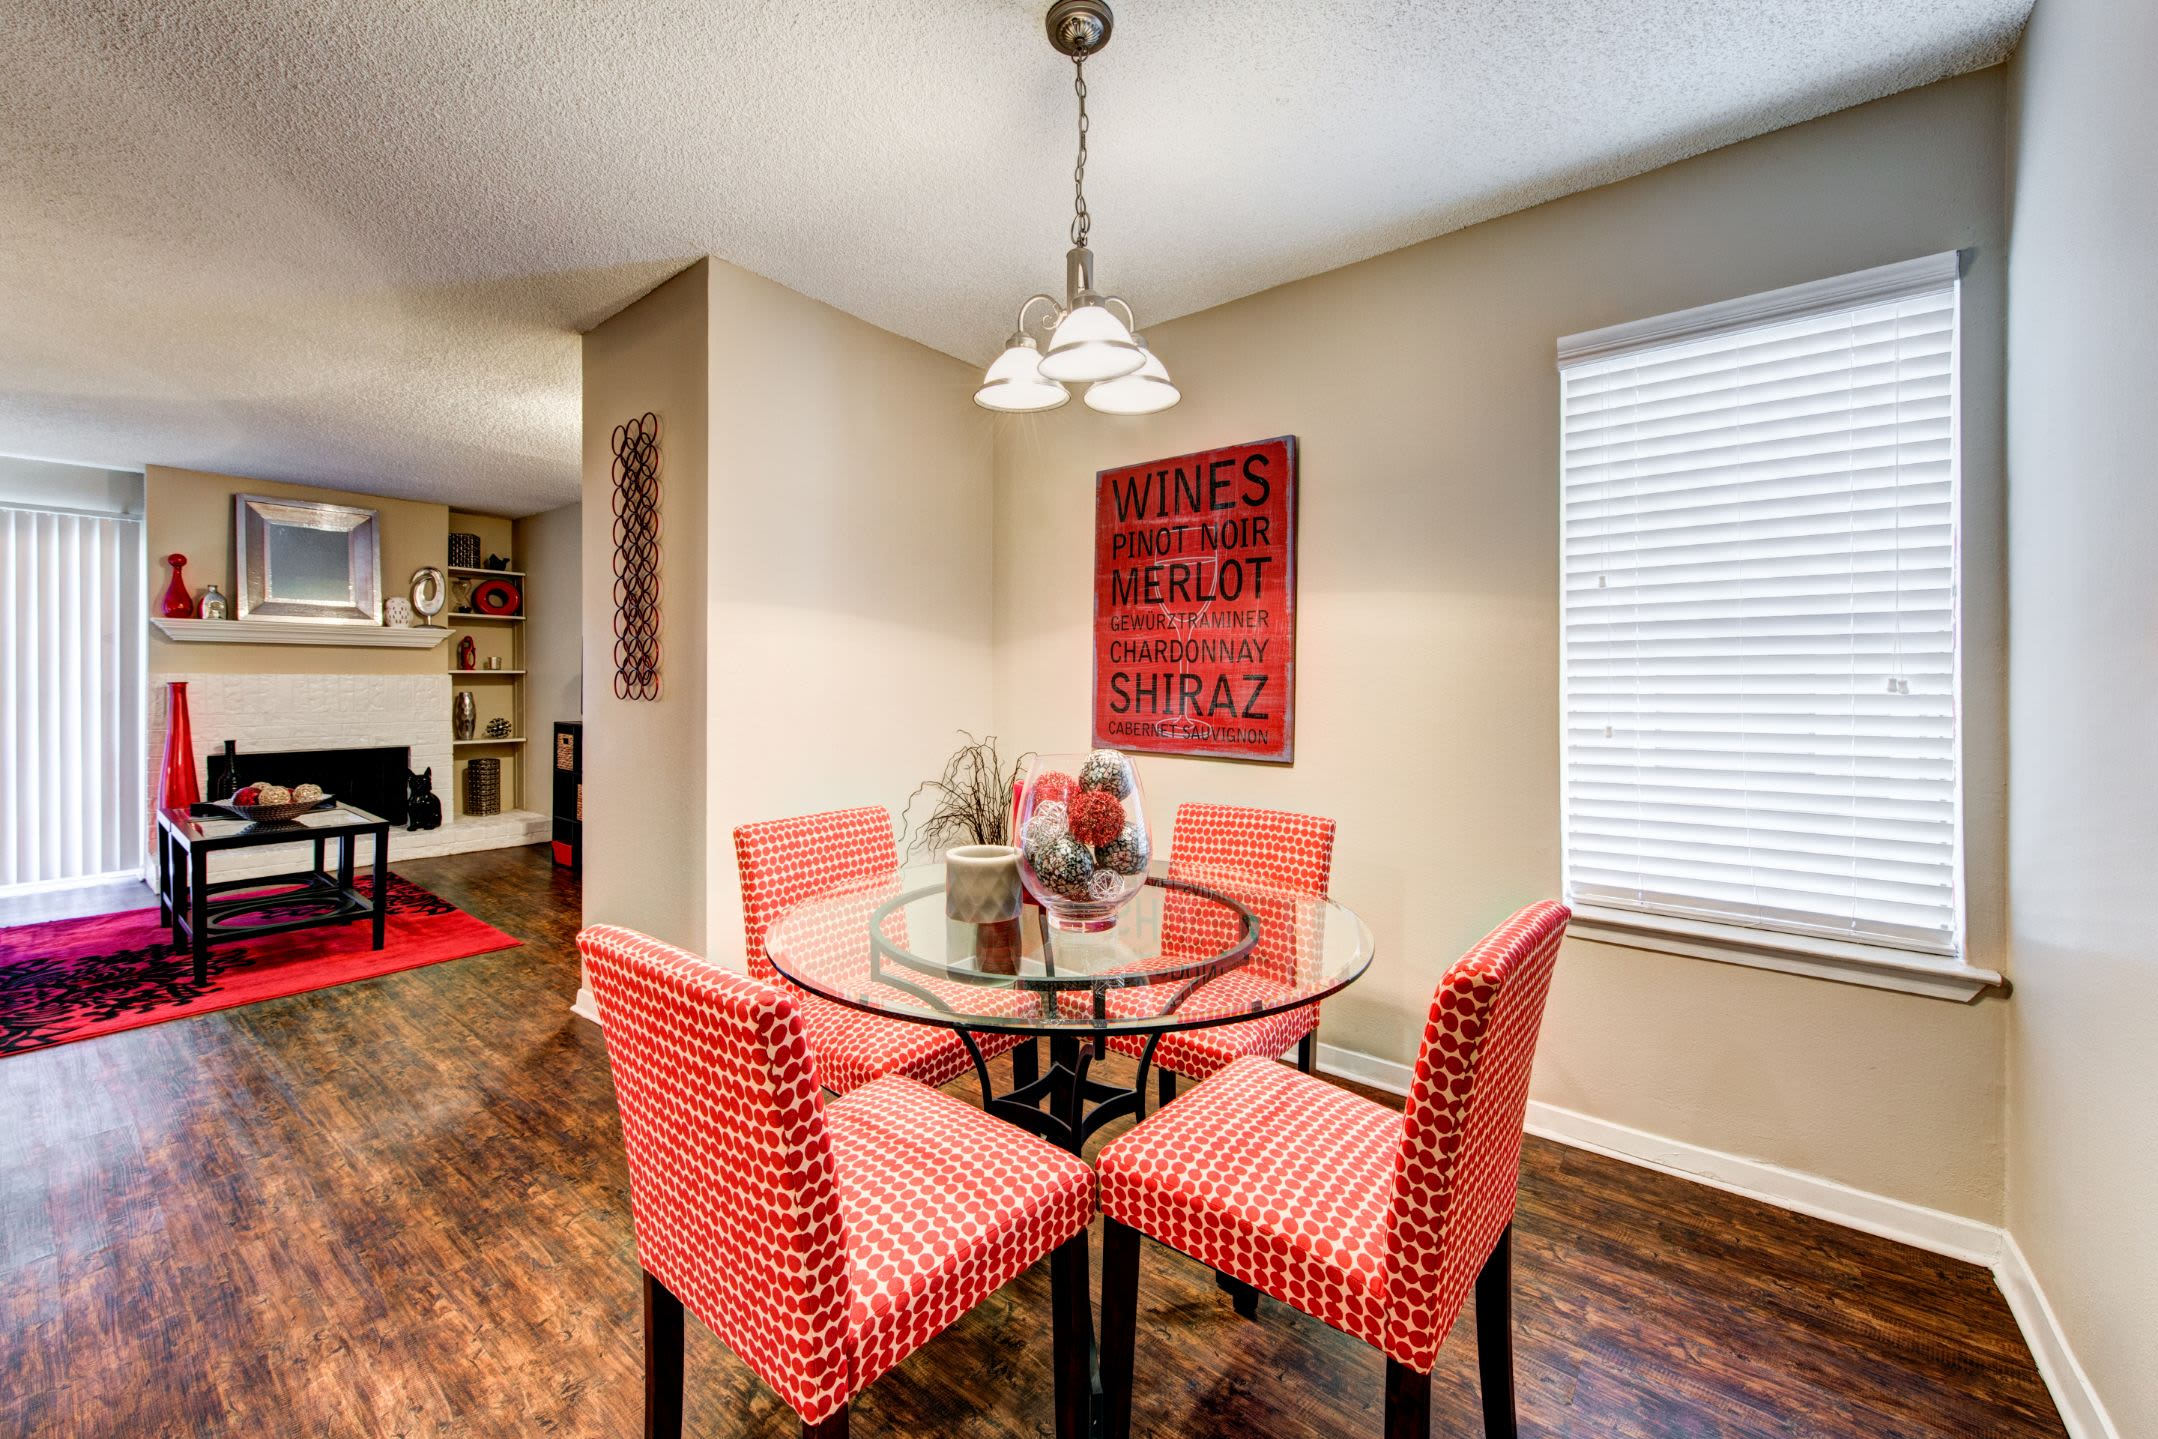 Dining area with a small chandelier at The Park at Flower Mound in Flower Mound, Texas